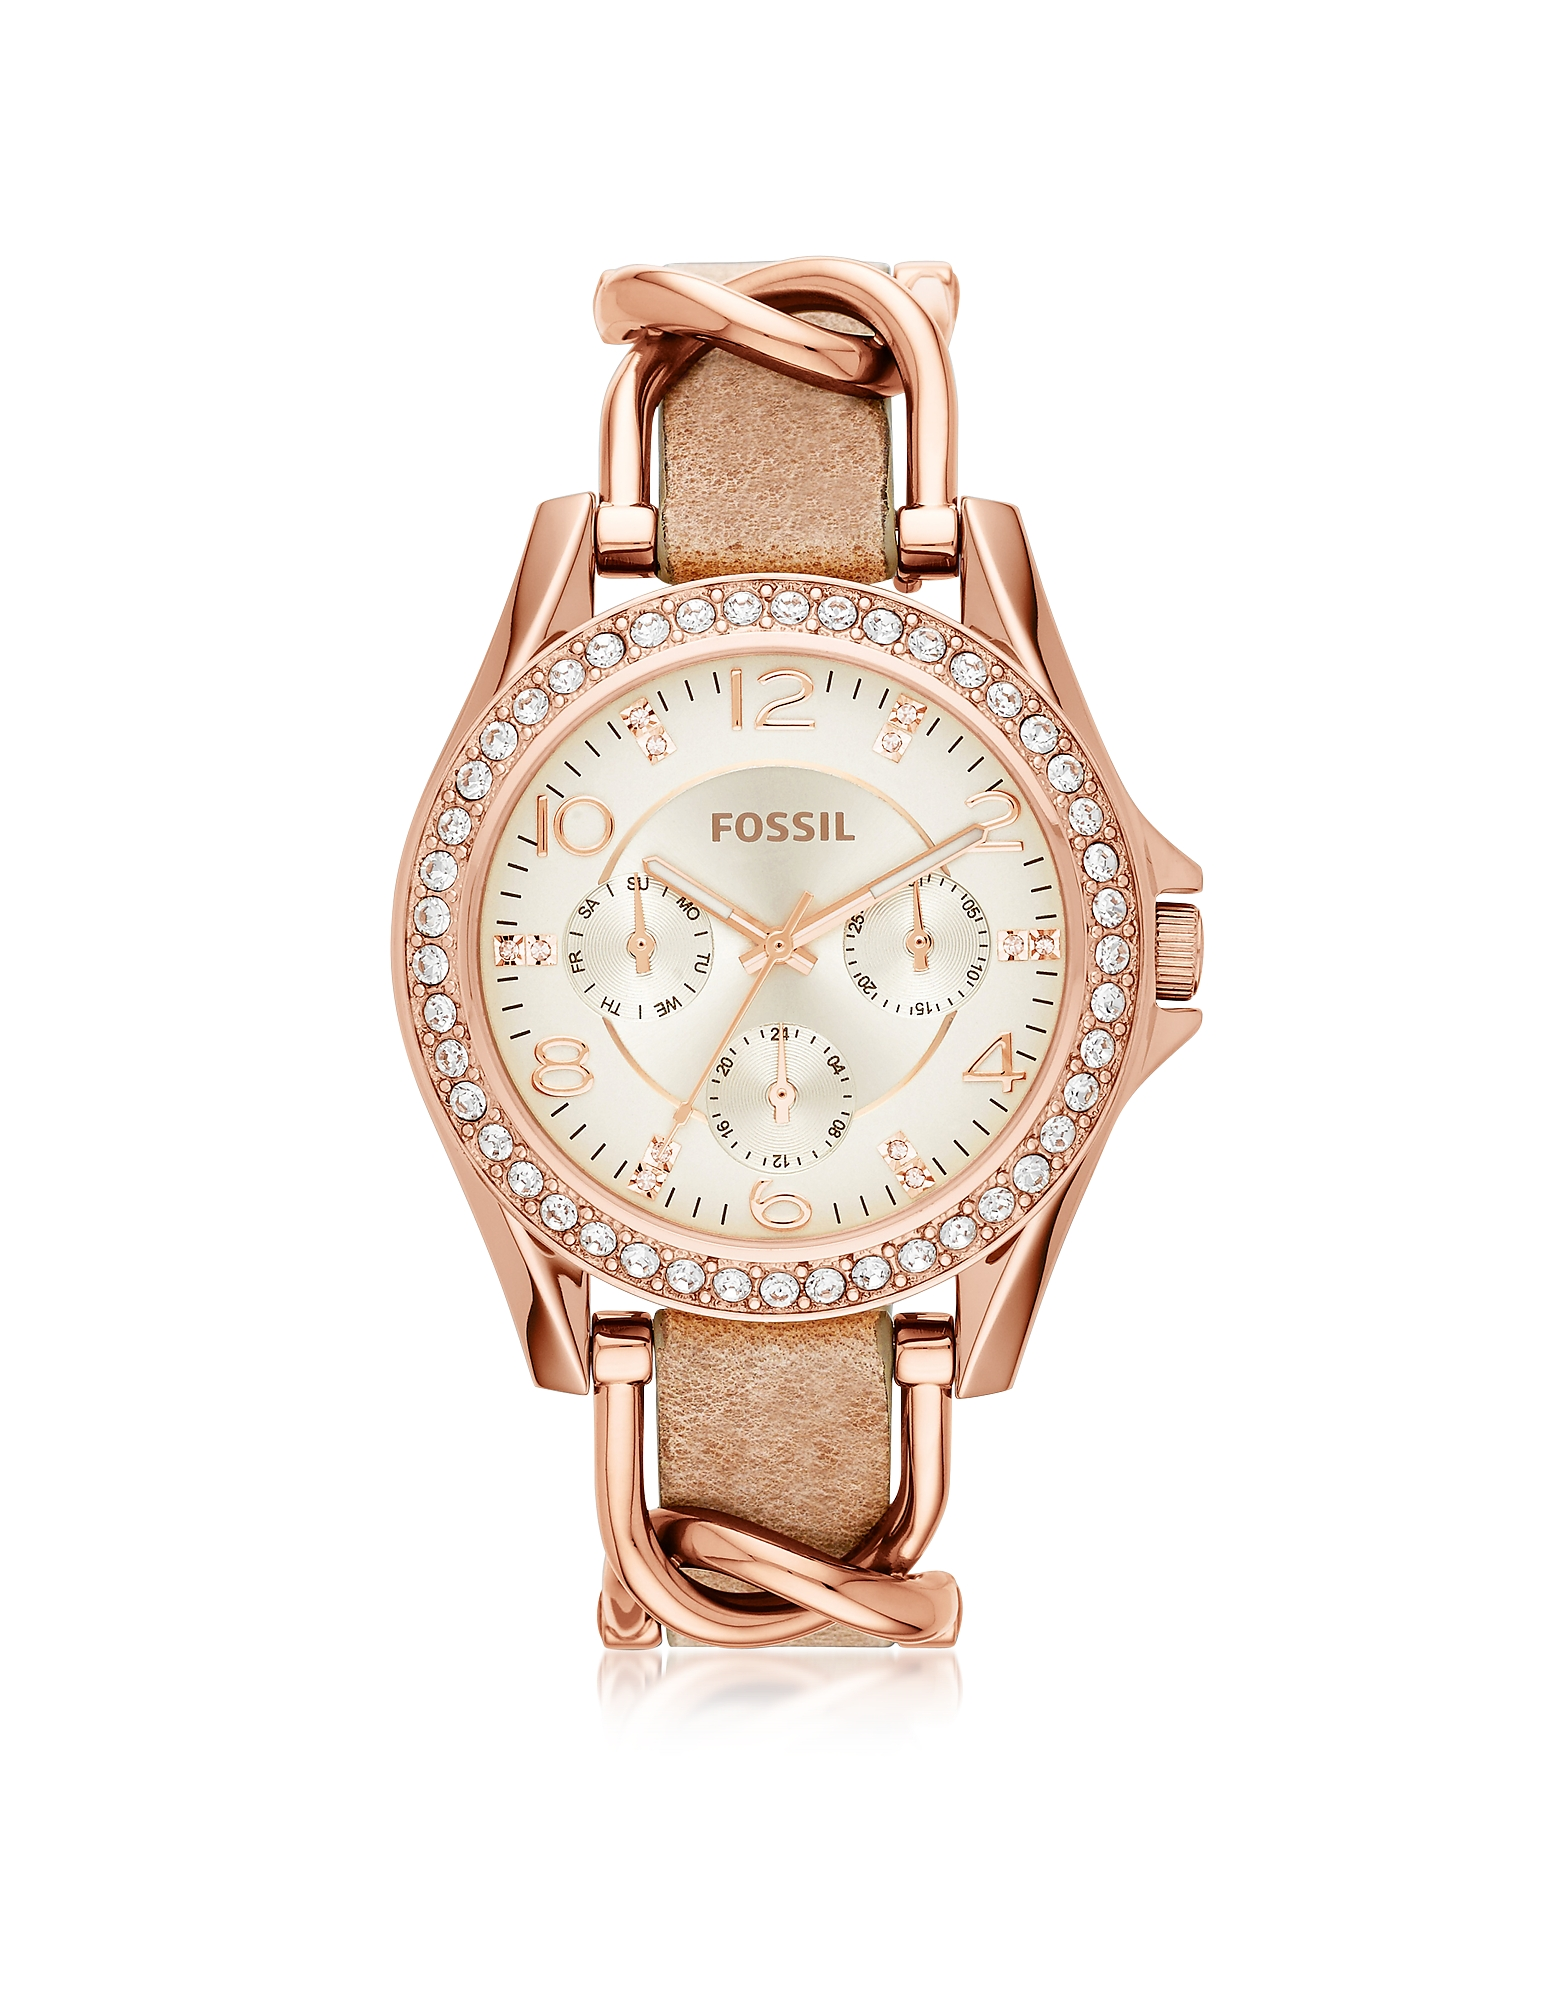 Fossil  Women's Watches Riley Rose Gold Tone Stainless Steel Case and Leather Strap Women's Watch